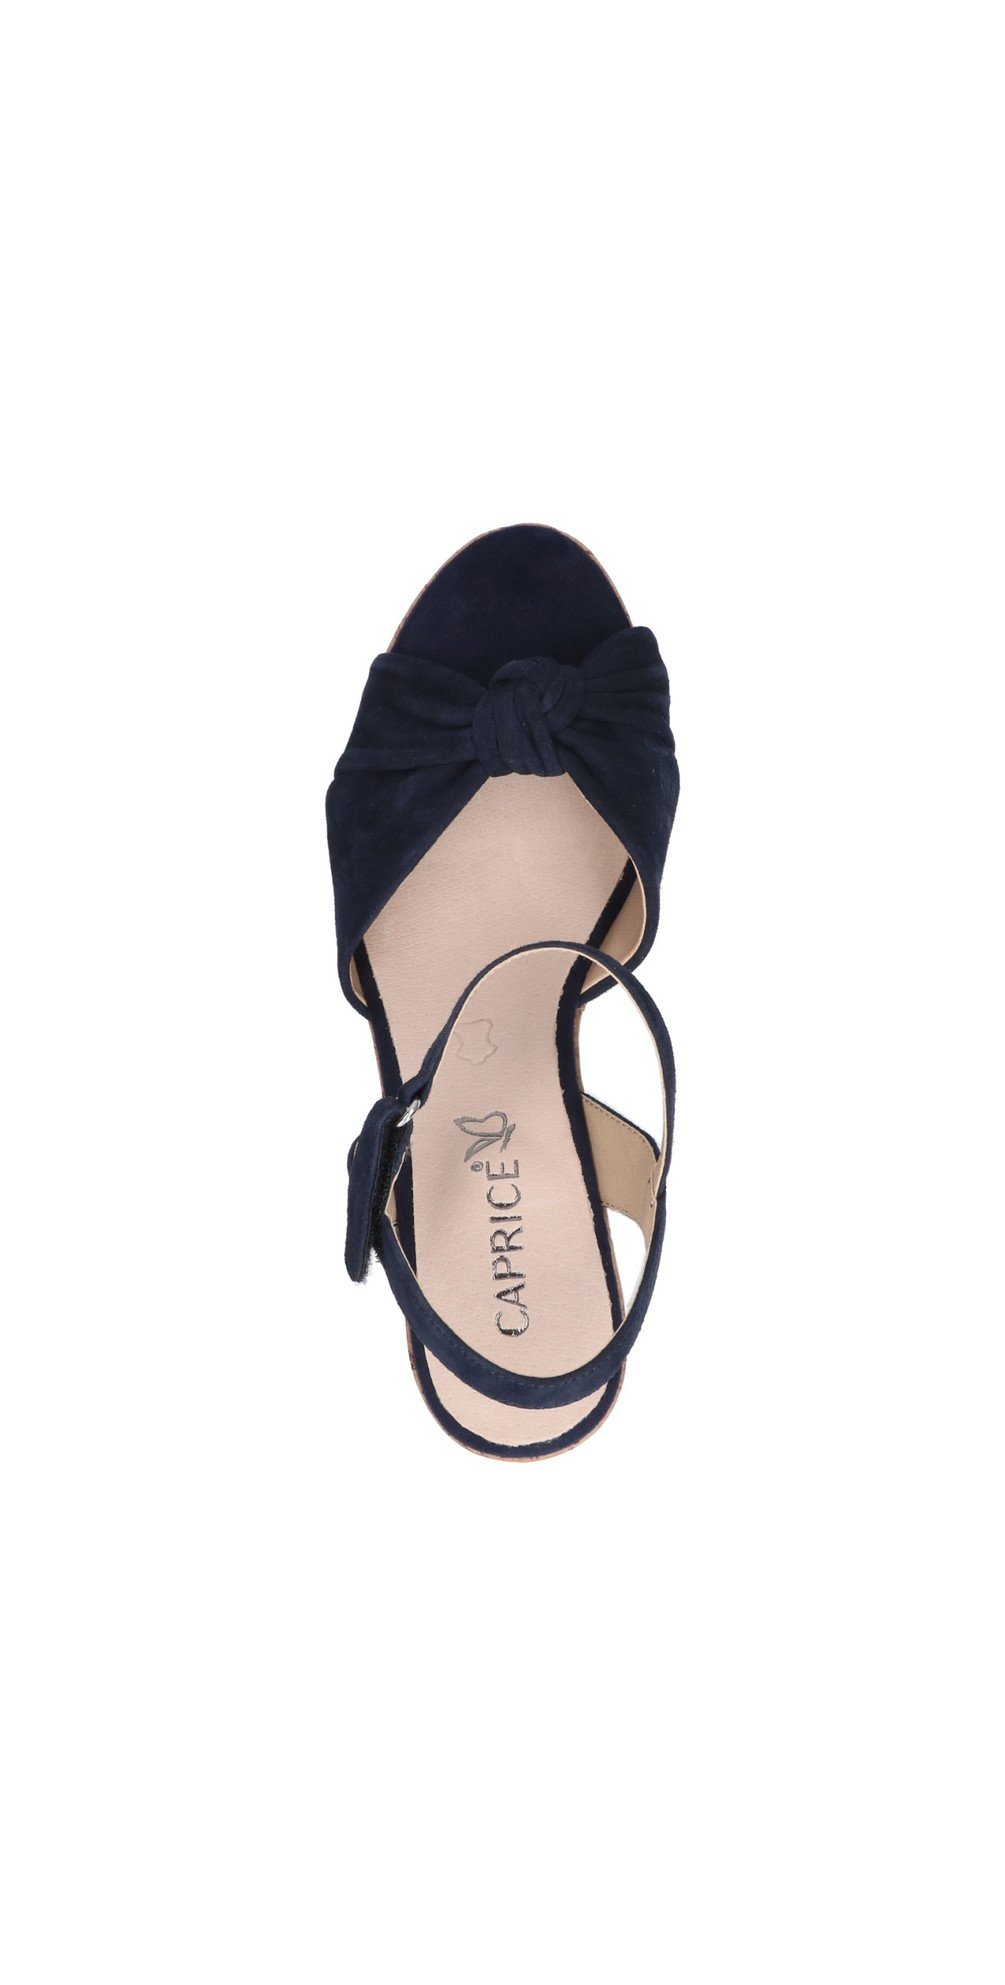 Knot Suede Wedge sandal  main image